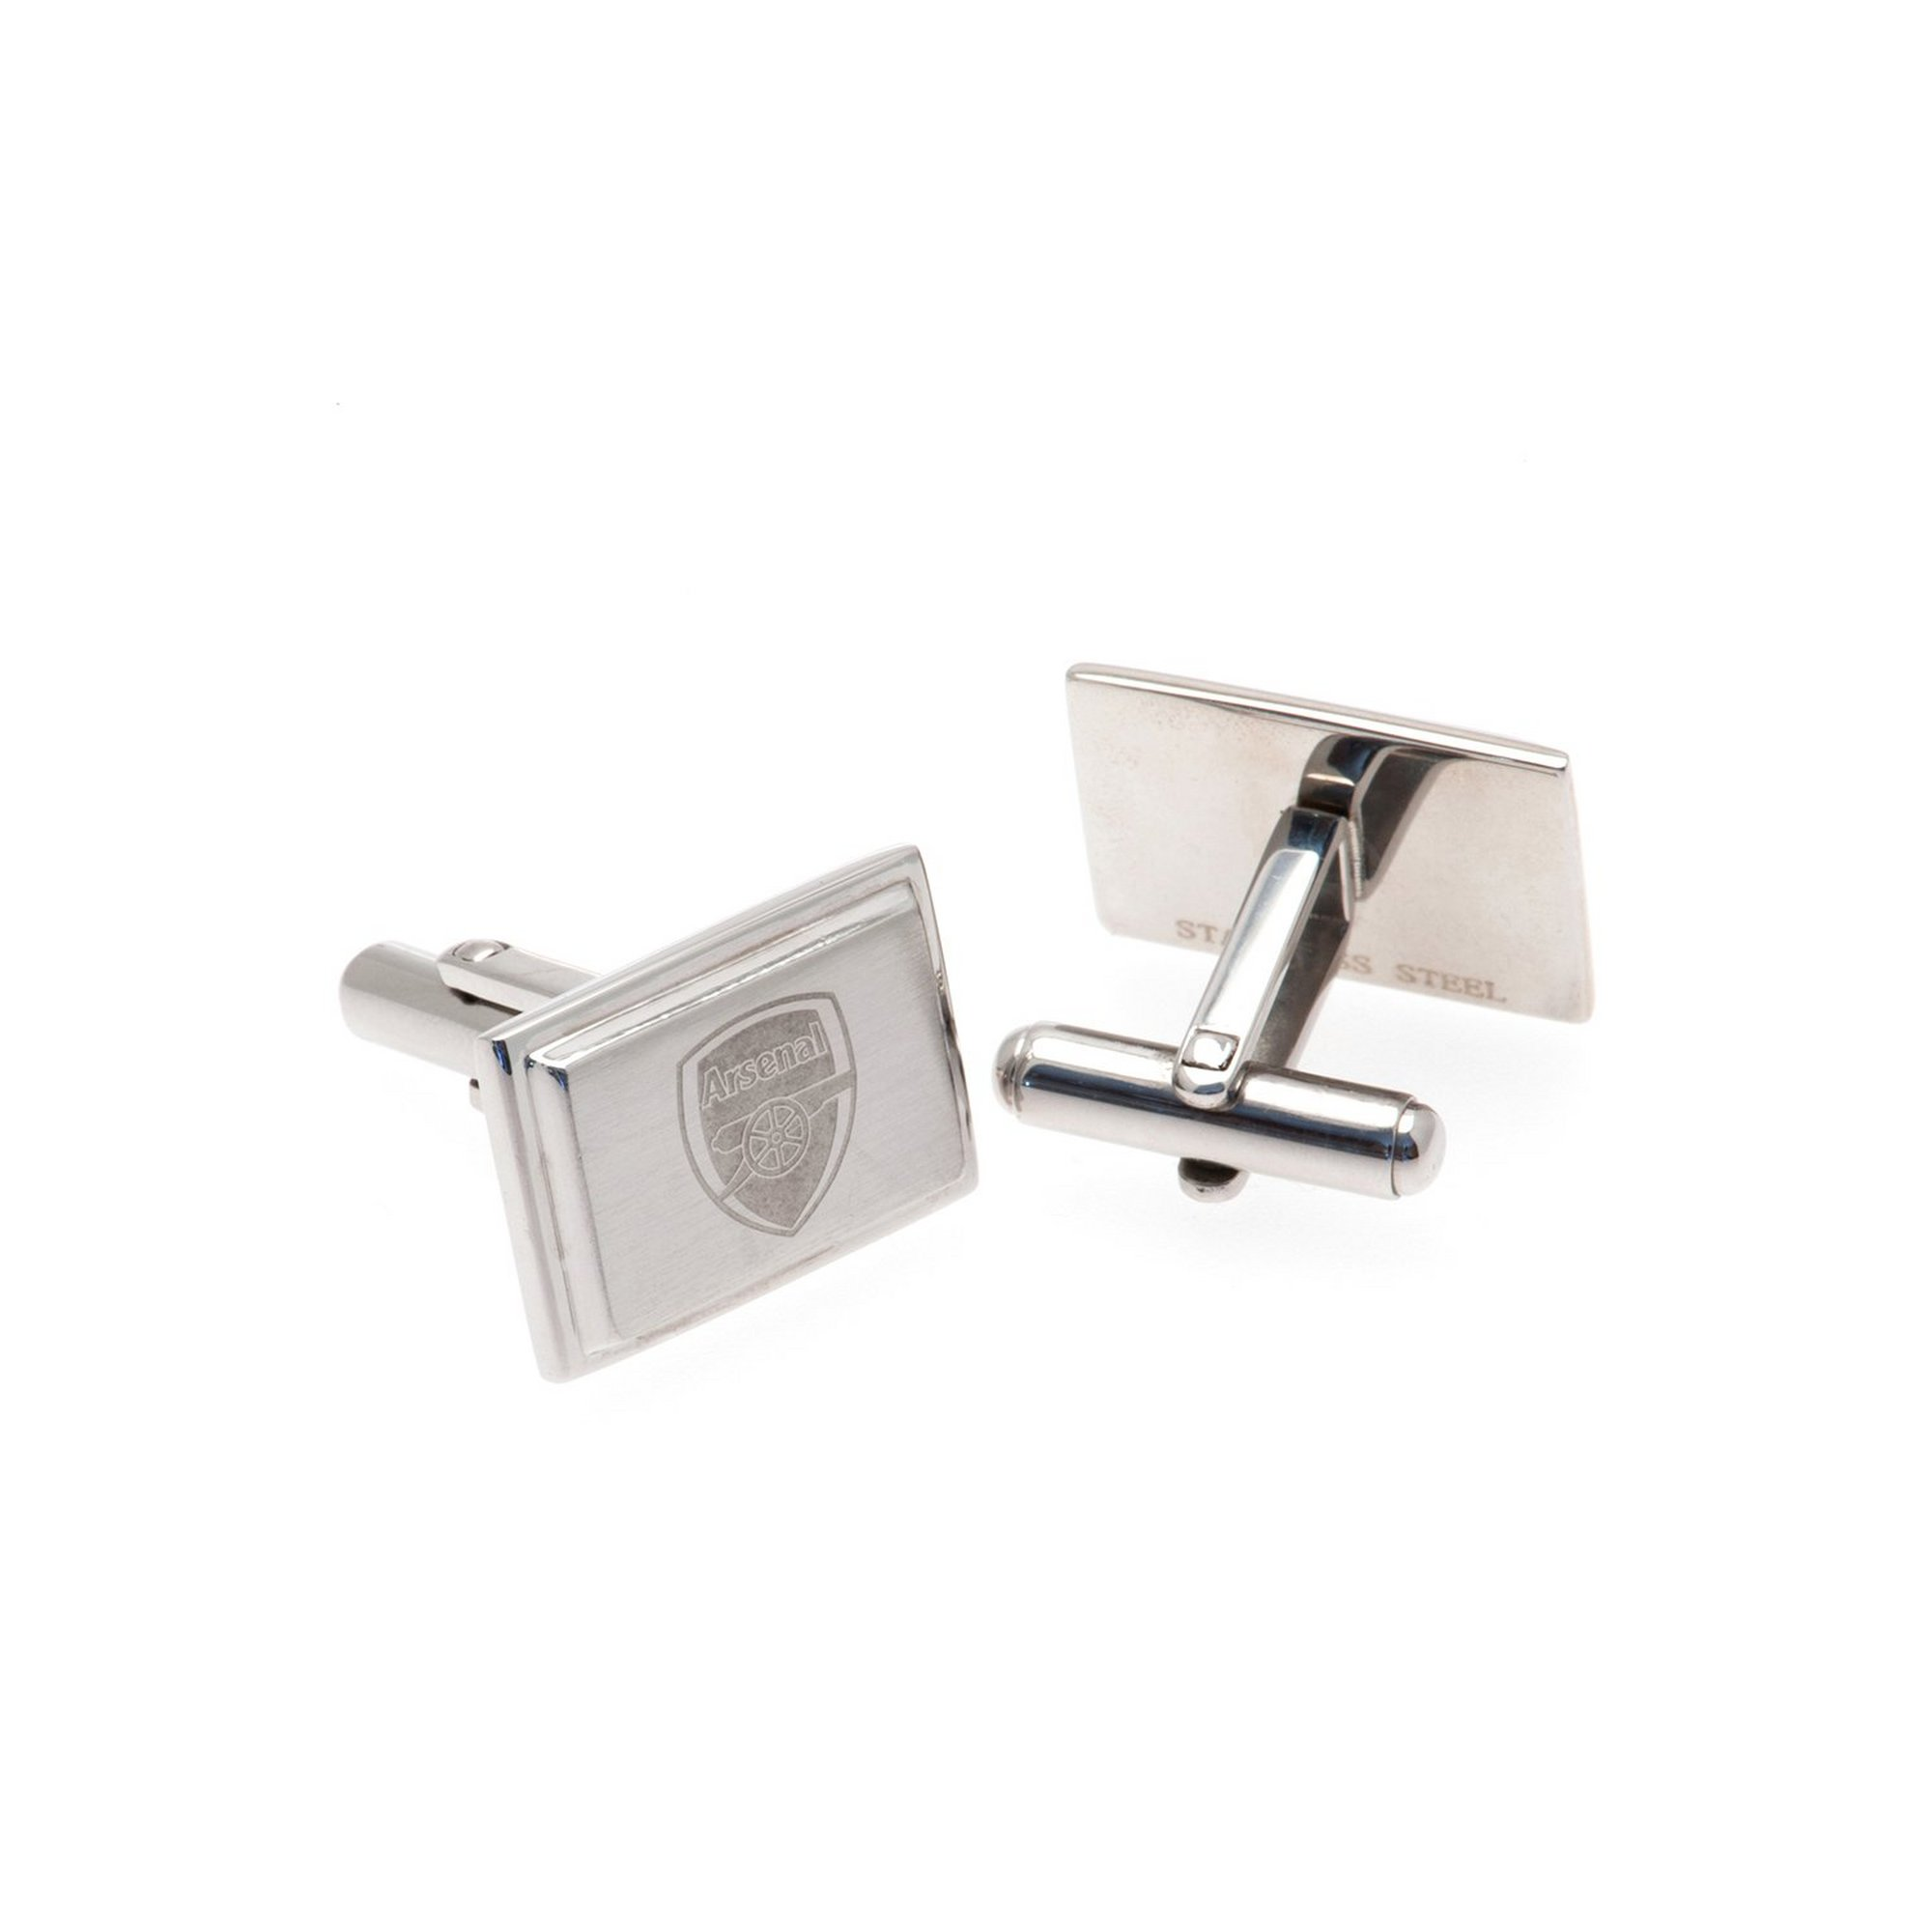 Image of Arsenal Stainless Steel Crest Cufflinks